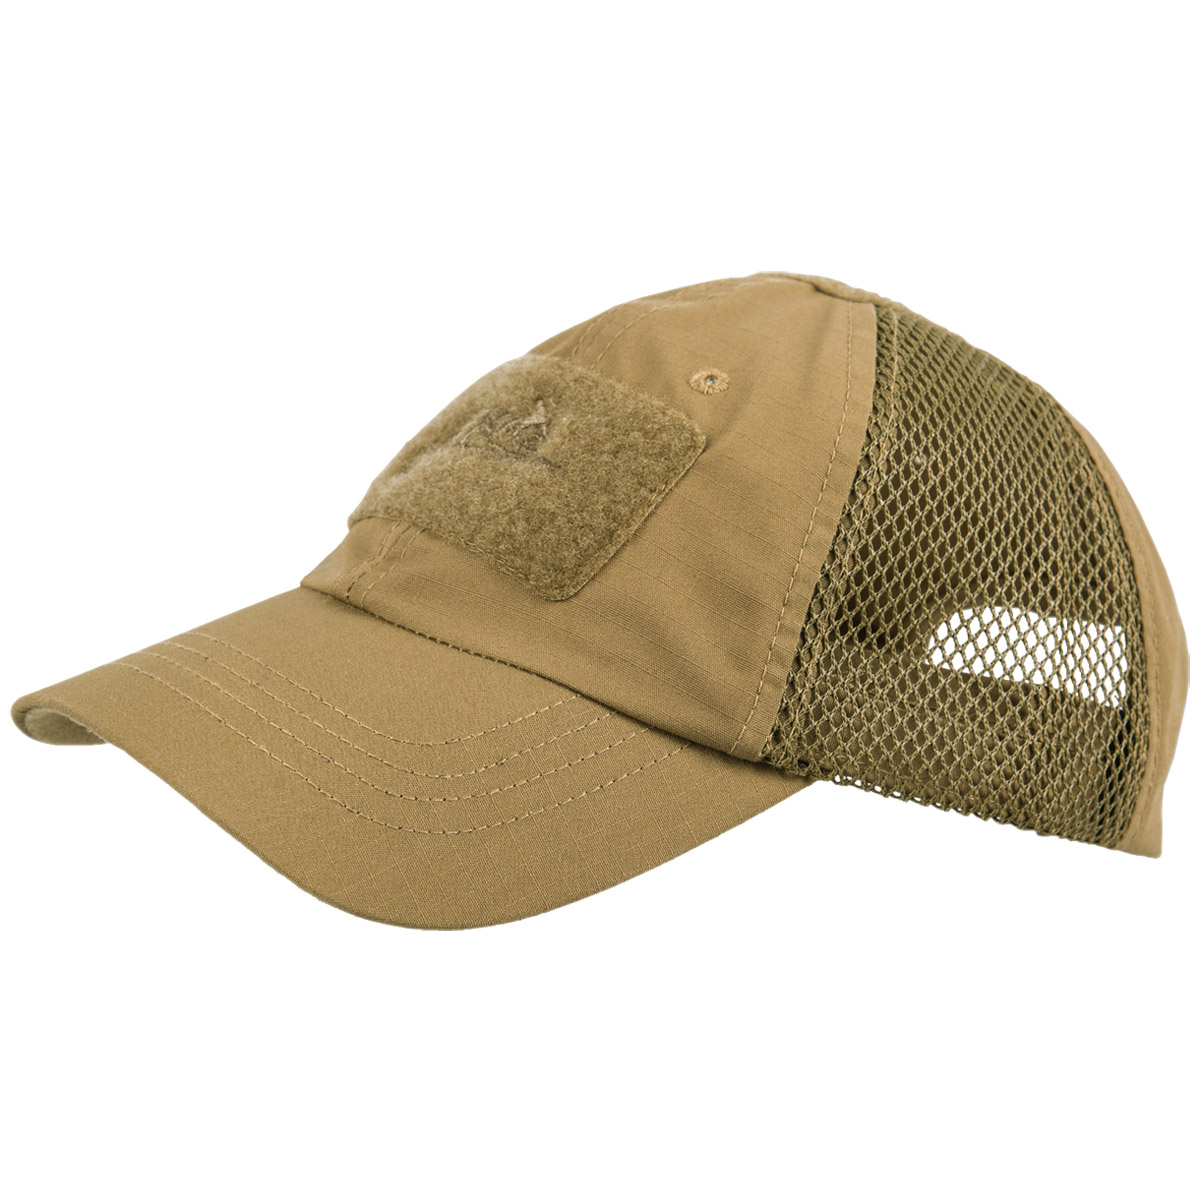 de8567a4c9a Sentinel Helikon Army Tactical Mens Baseball Cap Vent Military Airsoft  Ripstop Hat Coyote